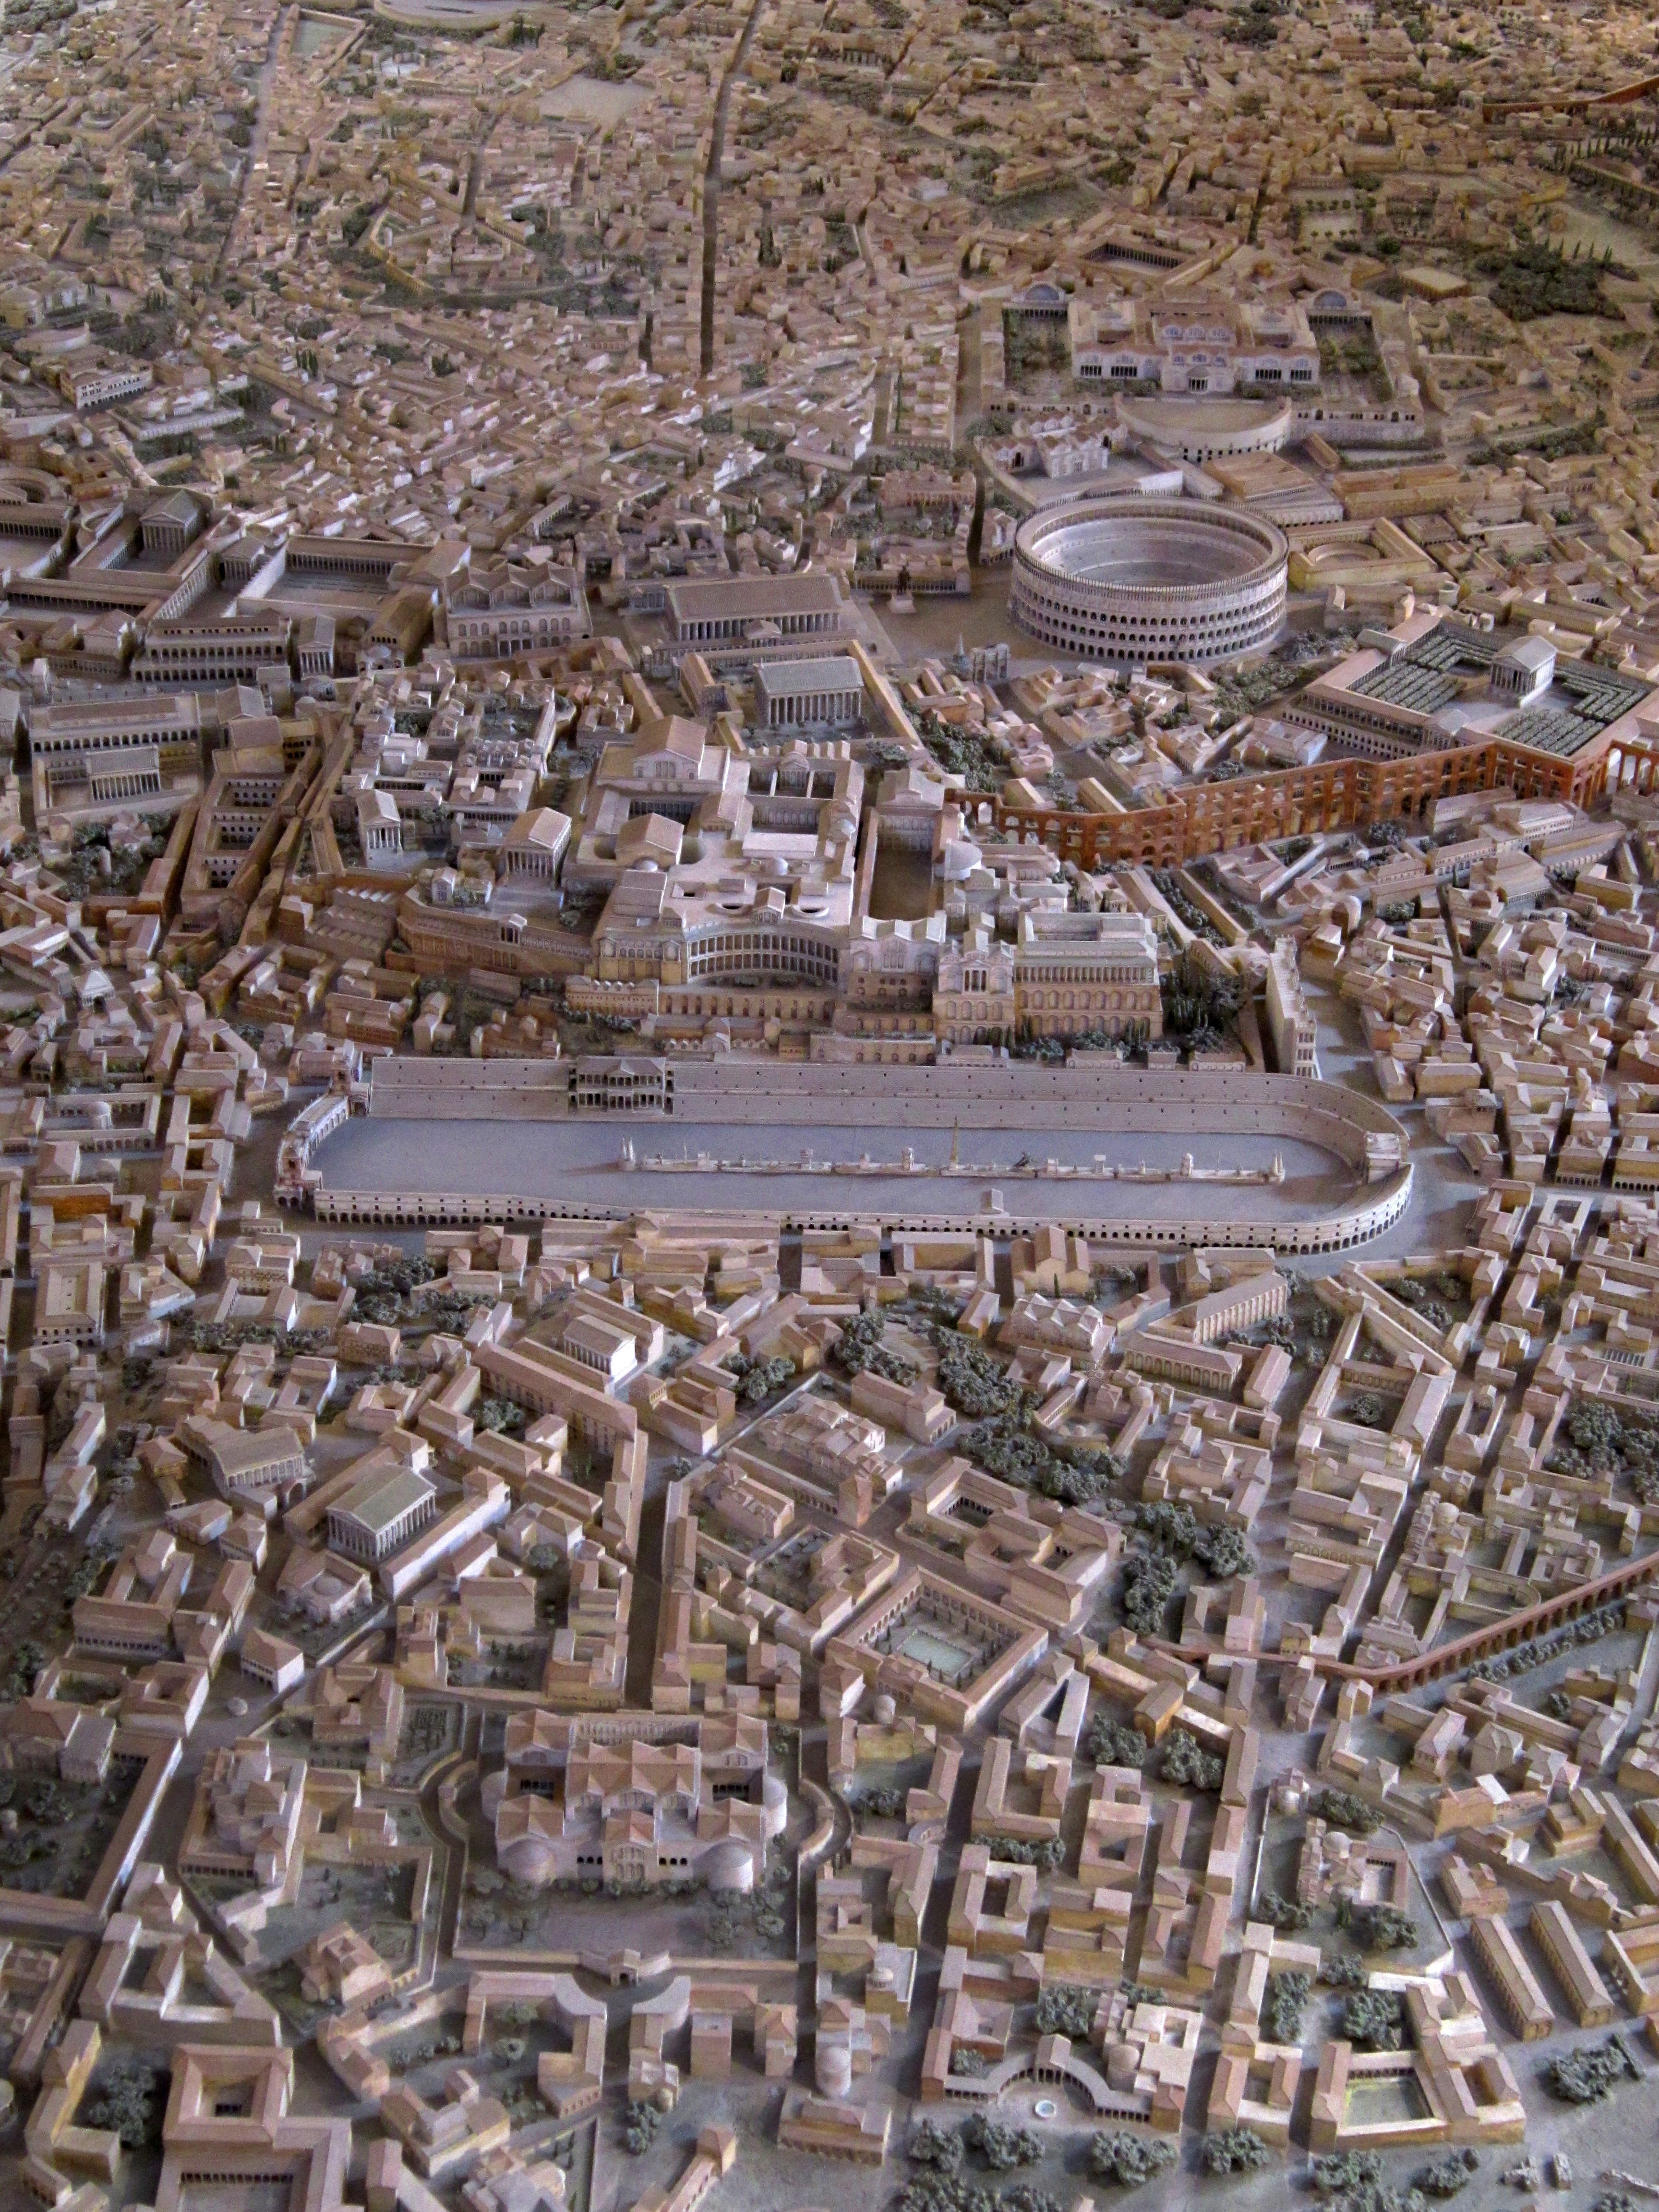 20 Images Of Ancient Roman History